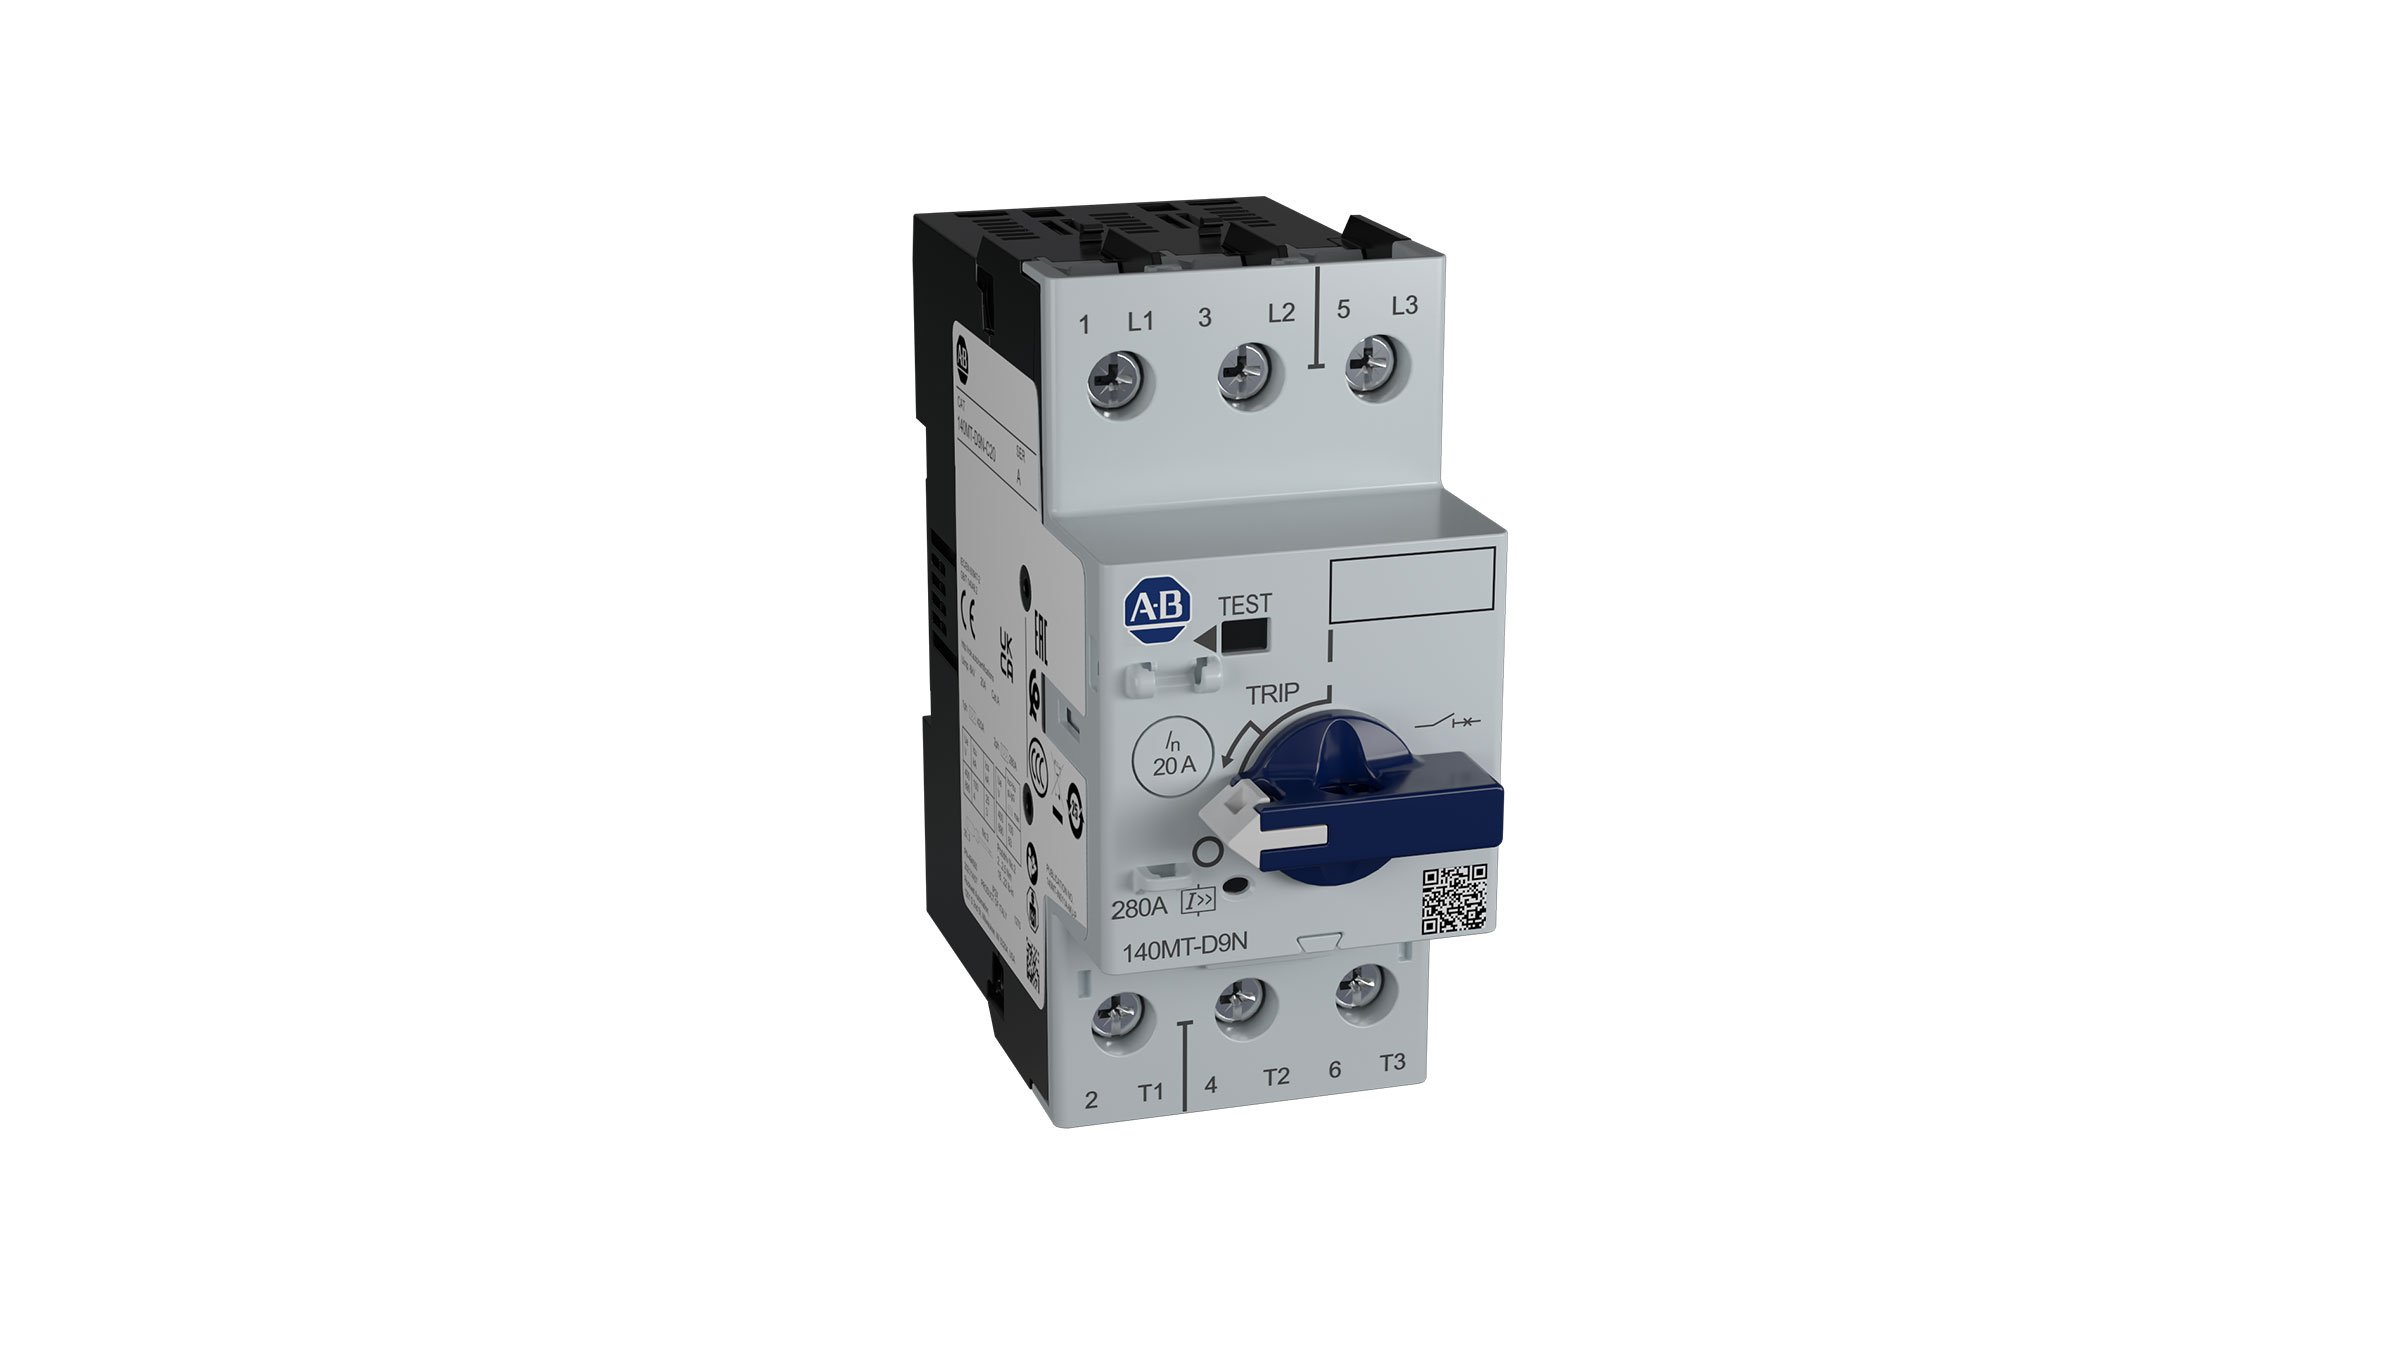 Bulletin 140MT-D9N Motor Circuit Protector showing lockable knob, trip test switch and trip indicator.